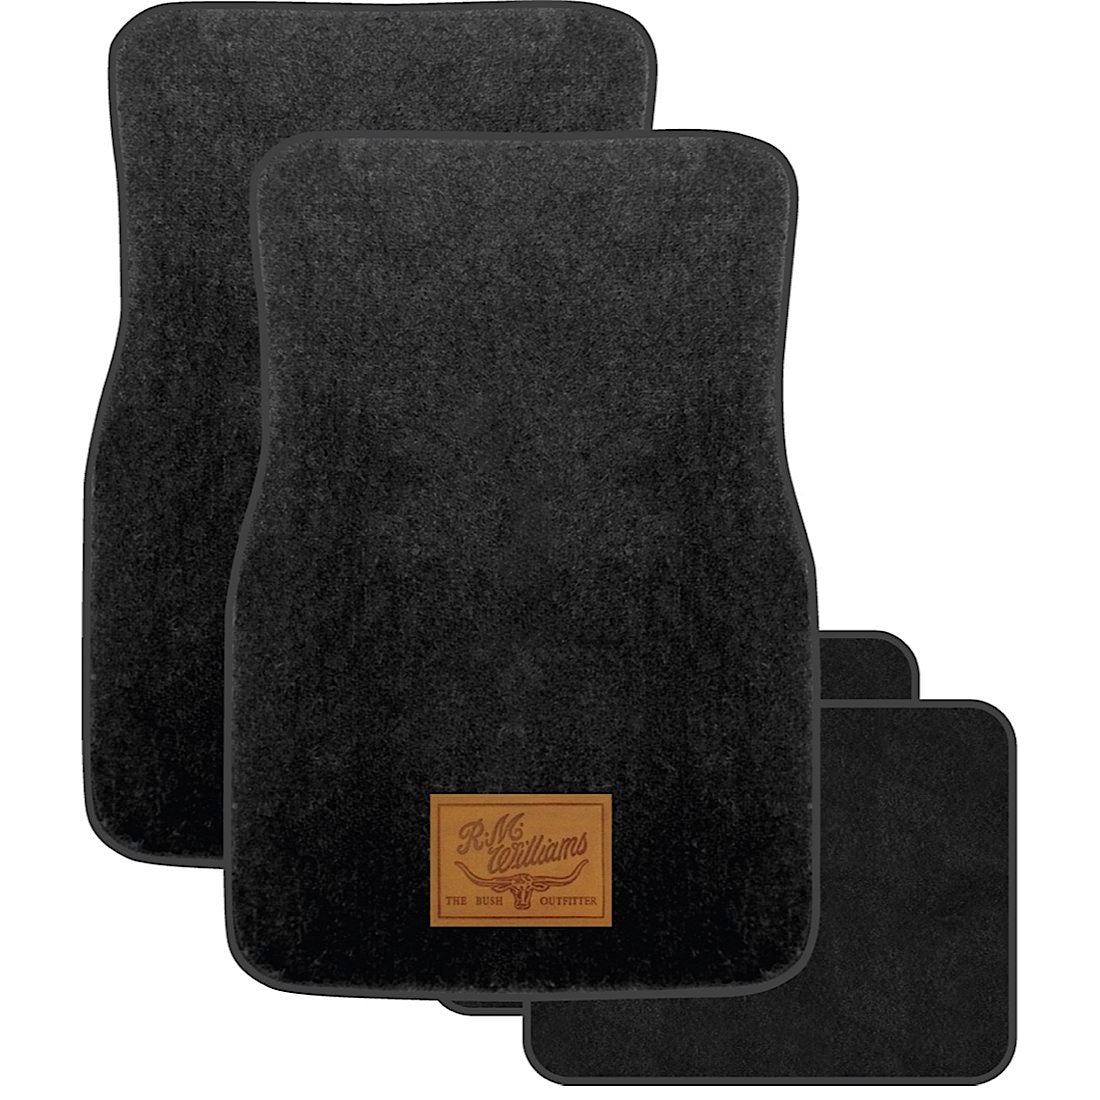 R.M.Williams Carpet Floor Mats Black